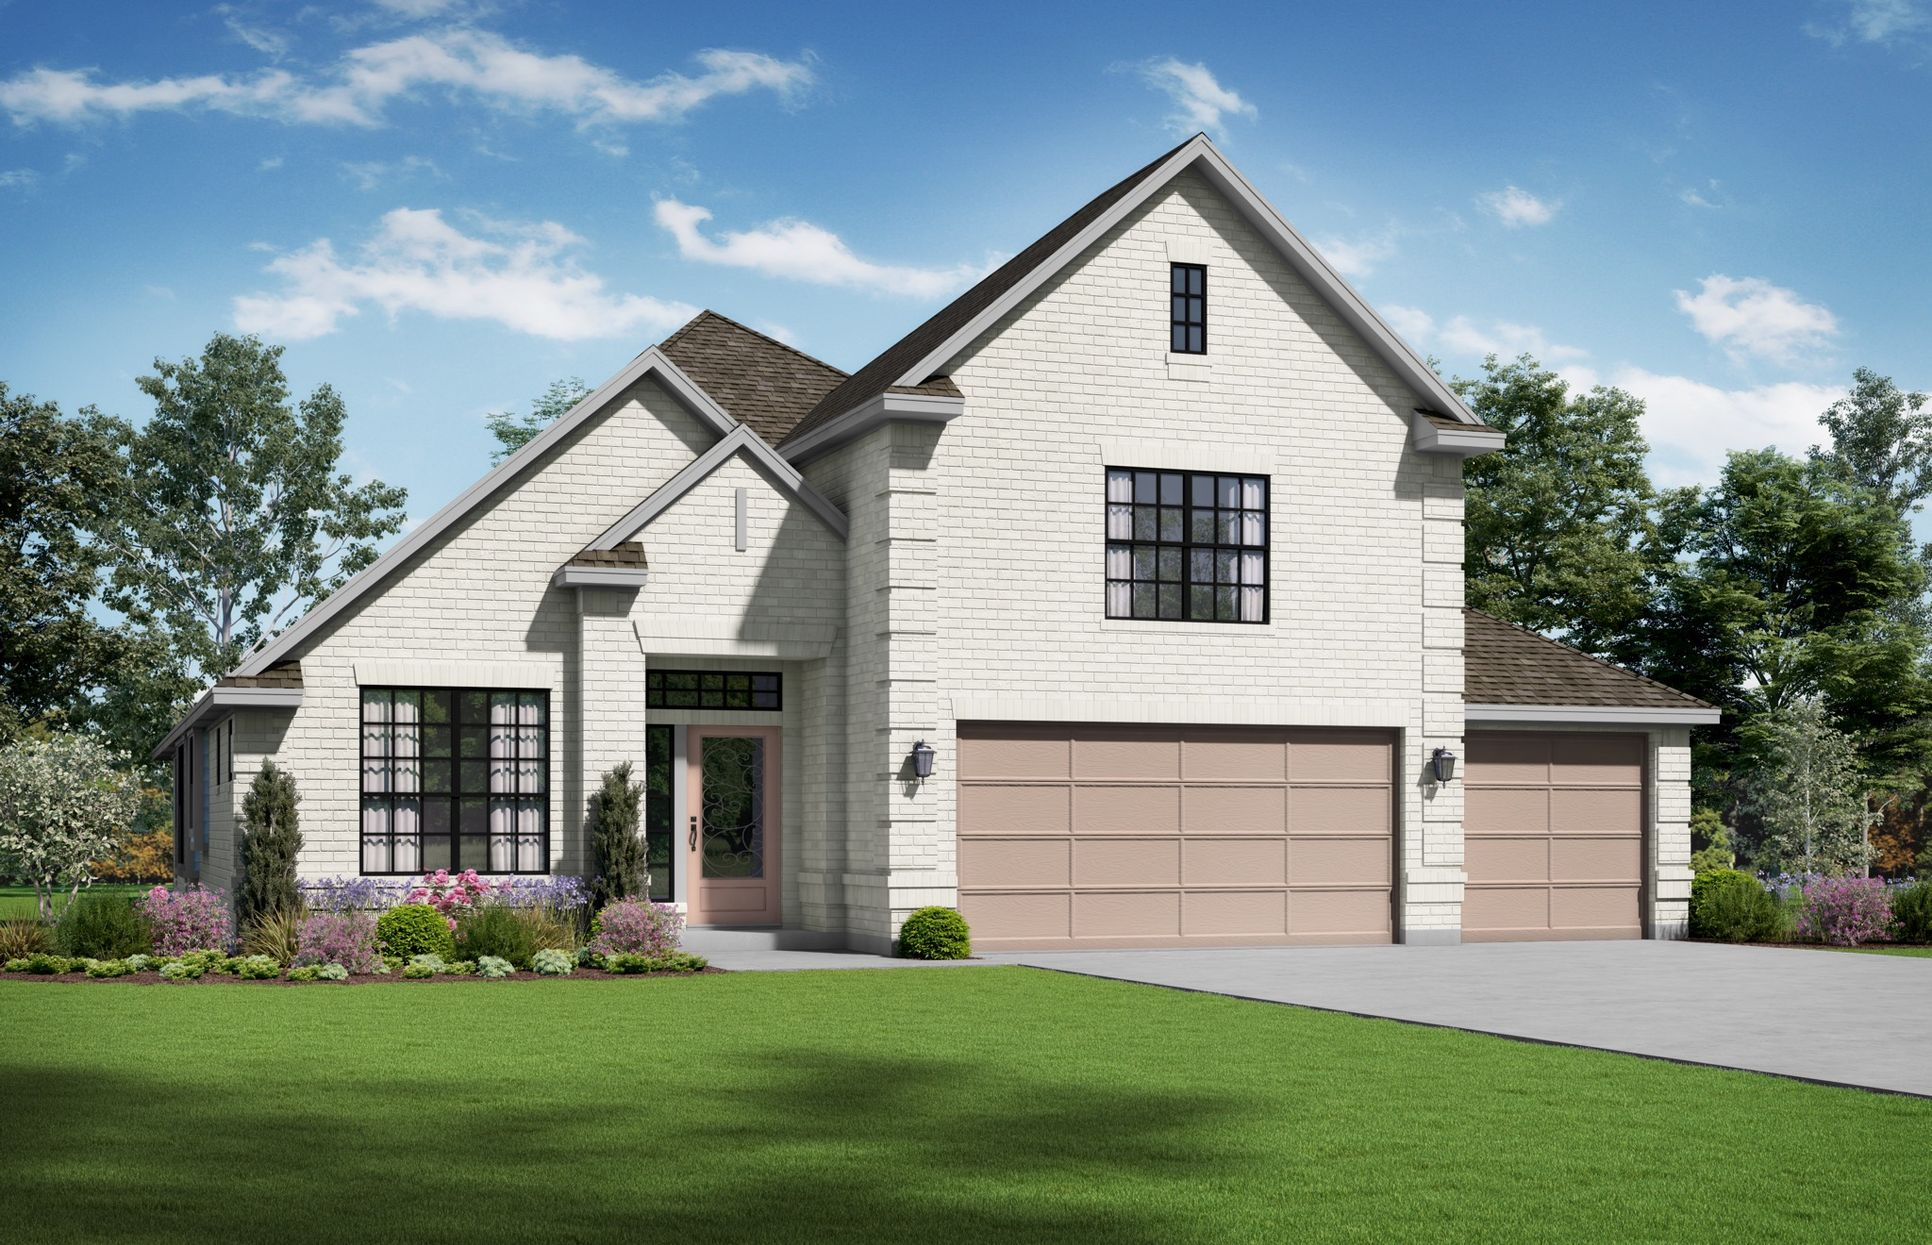 Caroline Elevation A. Images are artist renderings and will differ from the actual home built.:Caroline Elevation A